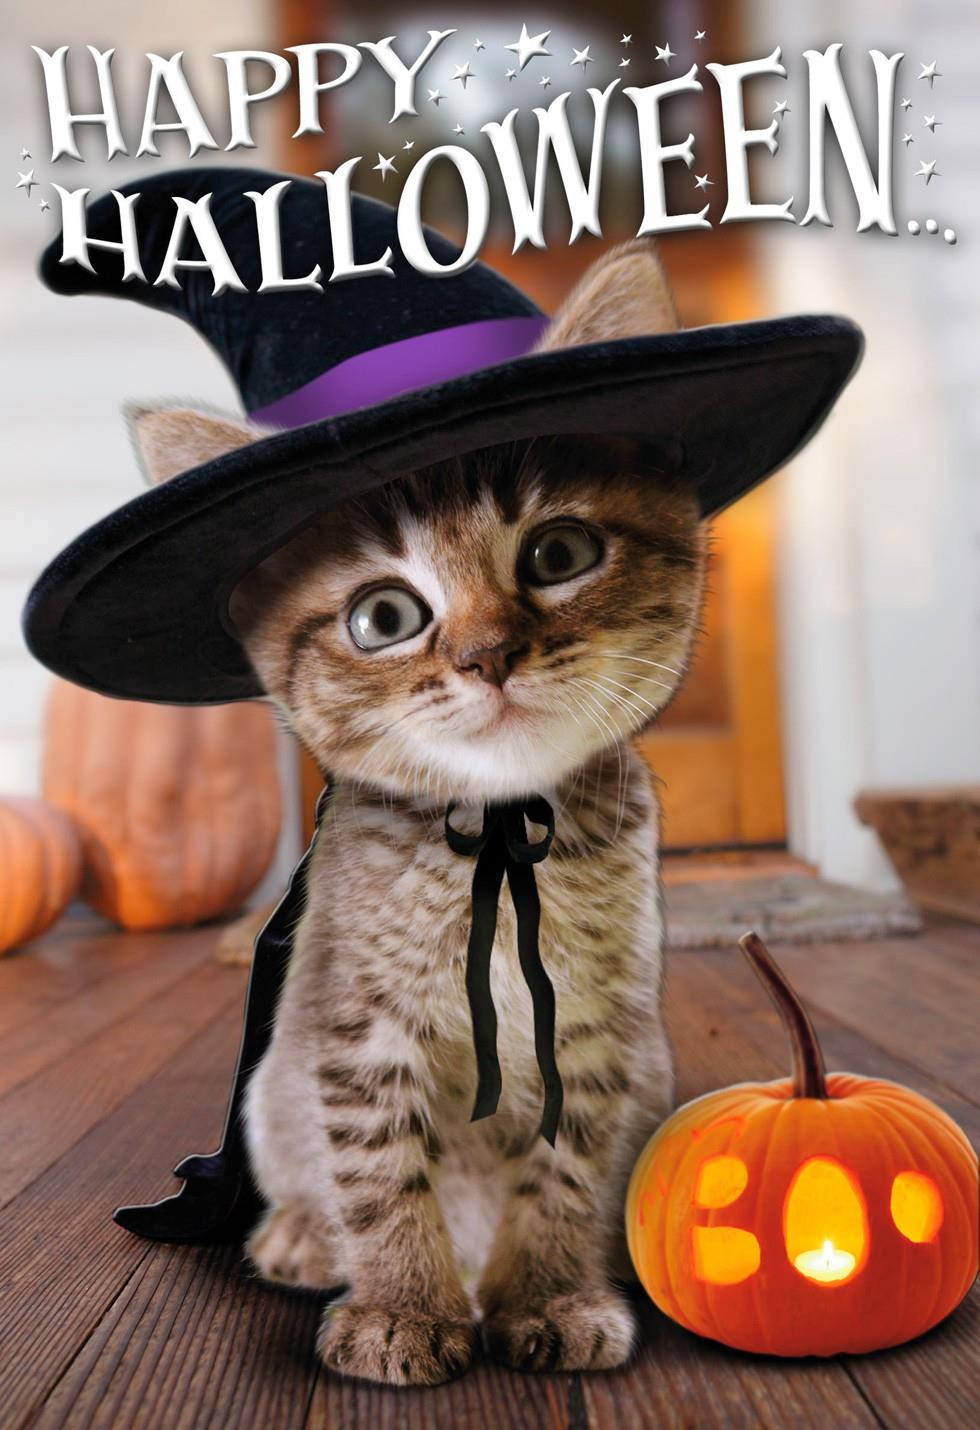 Cute Halloween Kitten Witch Halloween Card  Greeting